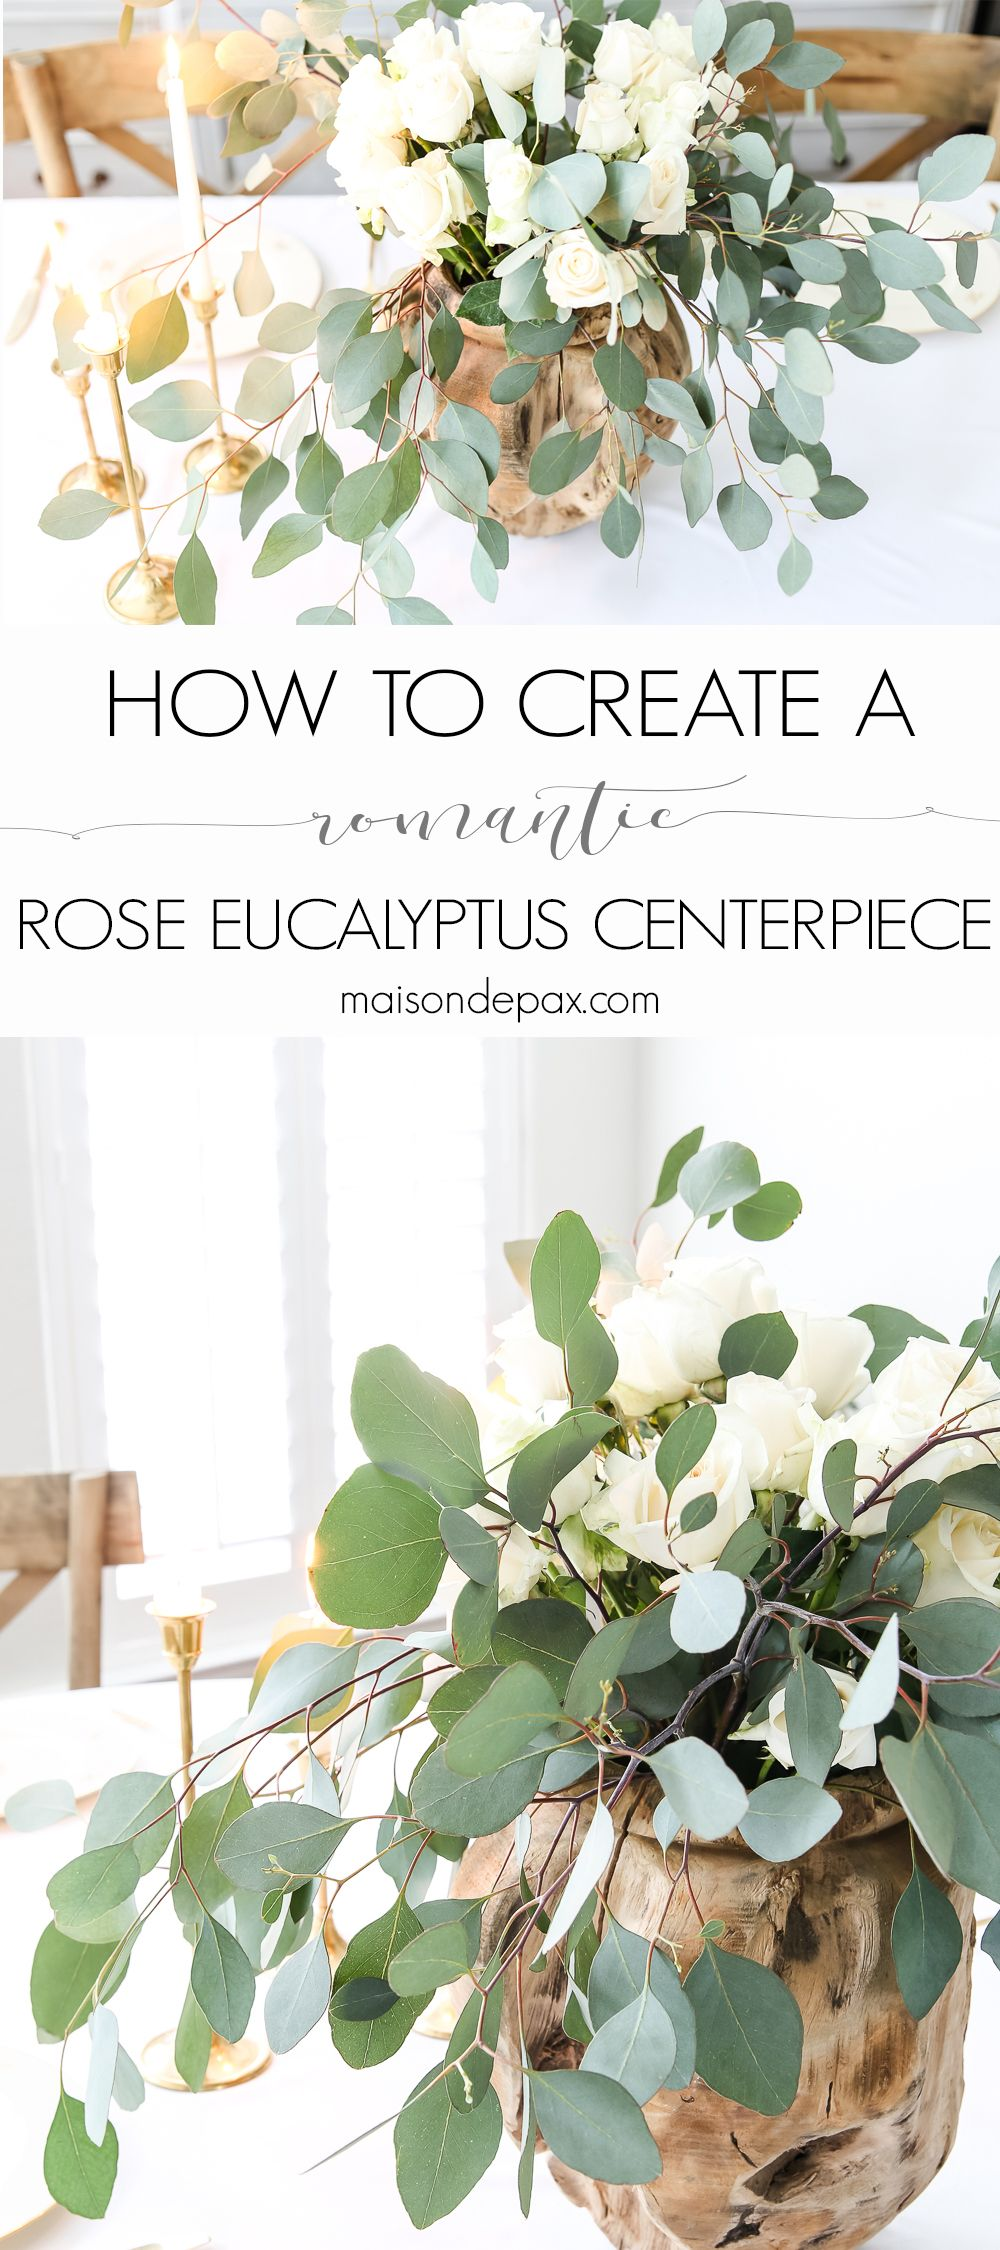 How To Create A Romantic Rose And Eucalyptus Centerpiece Maison De Pax Eucalyptus Centerpiece Romantic Roses Romantic Centerpieces